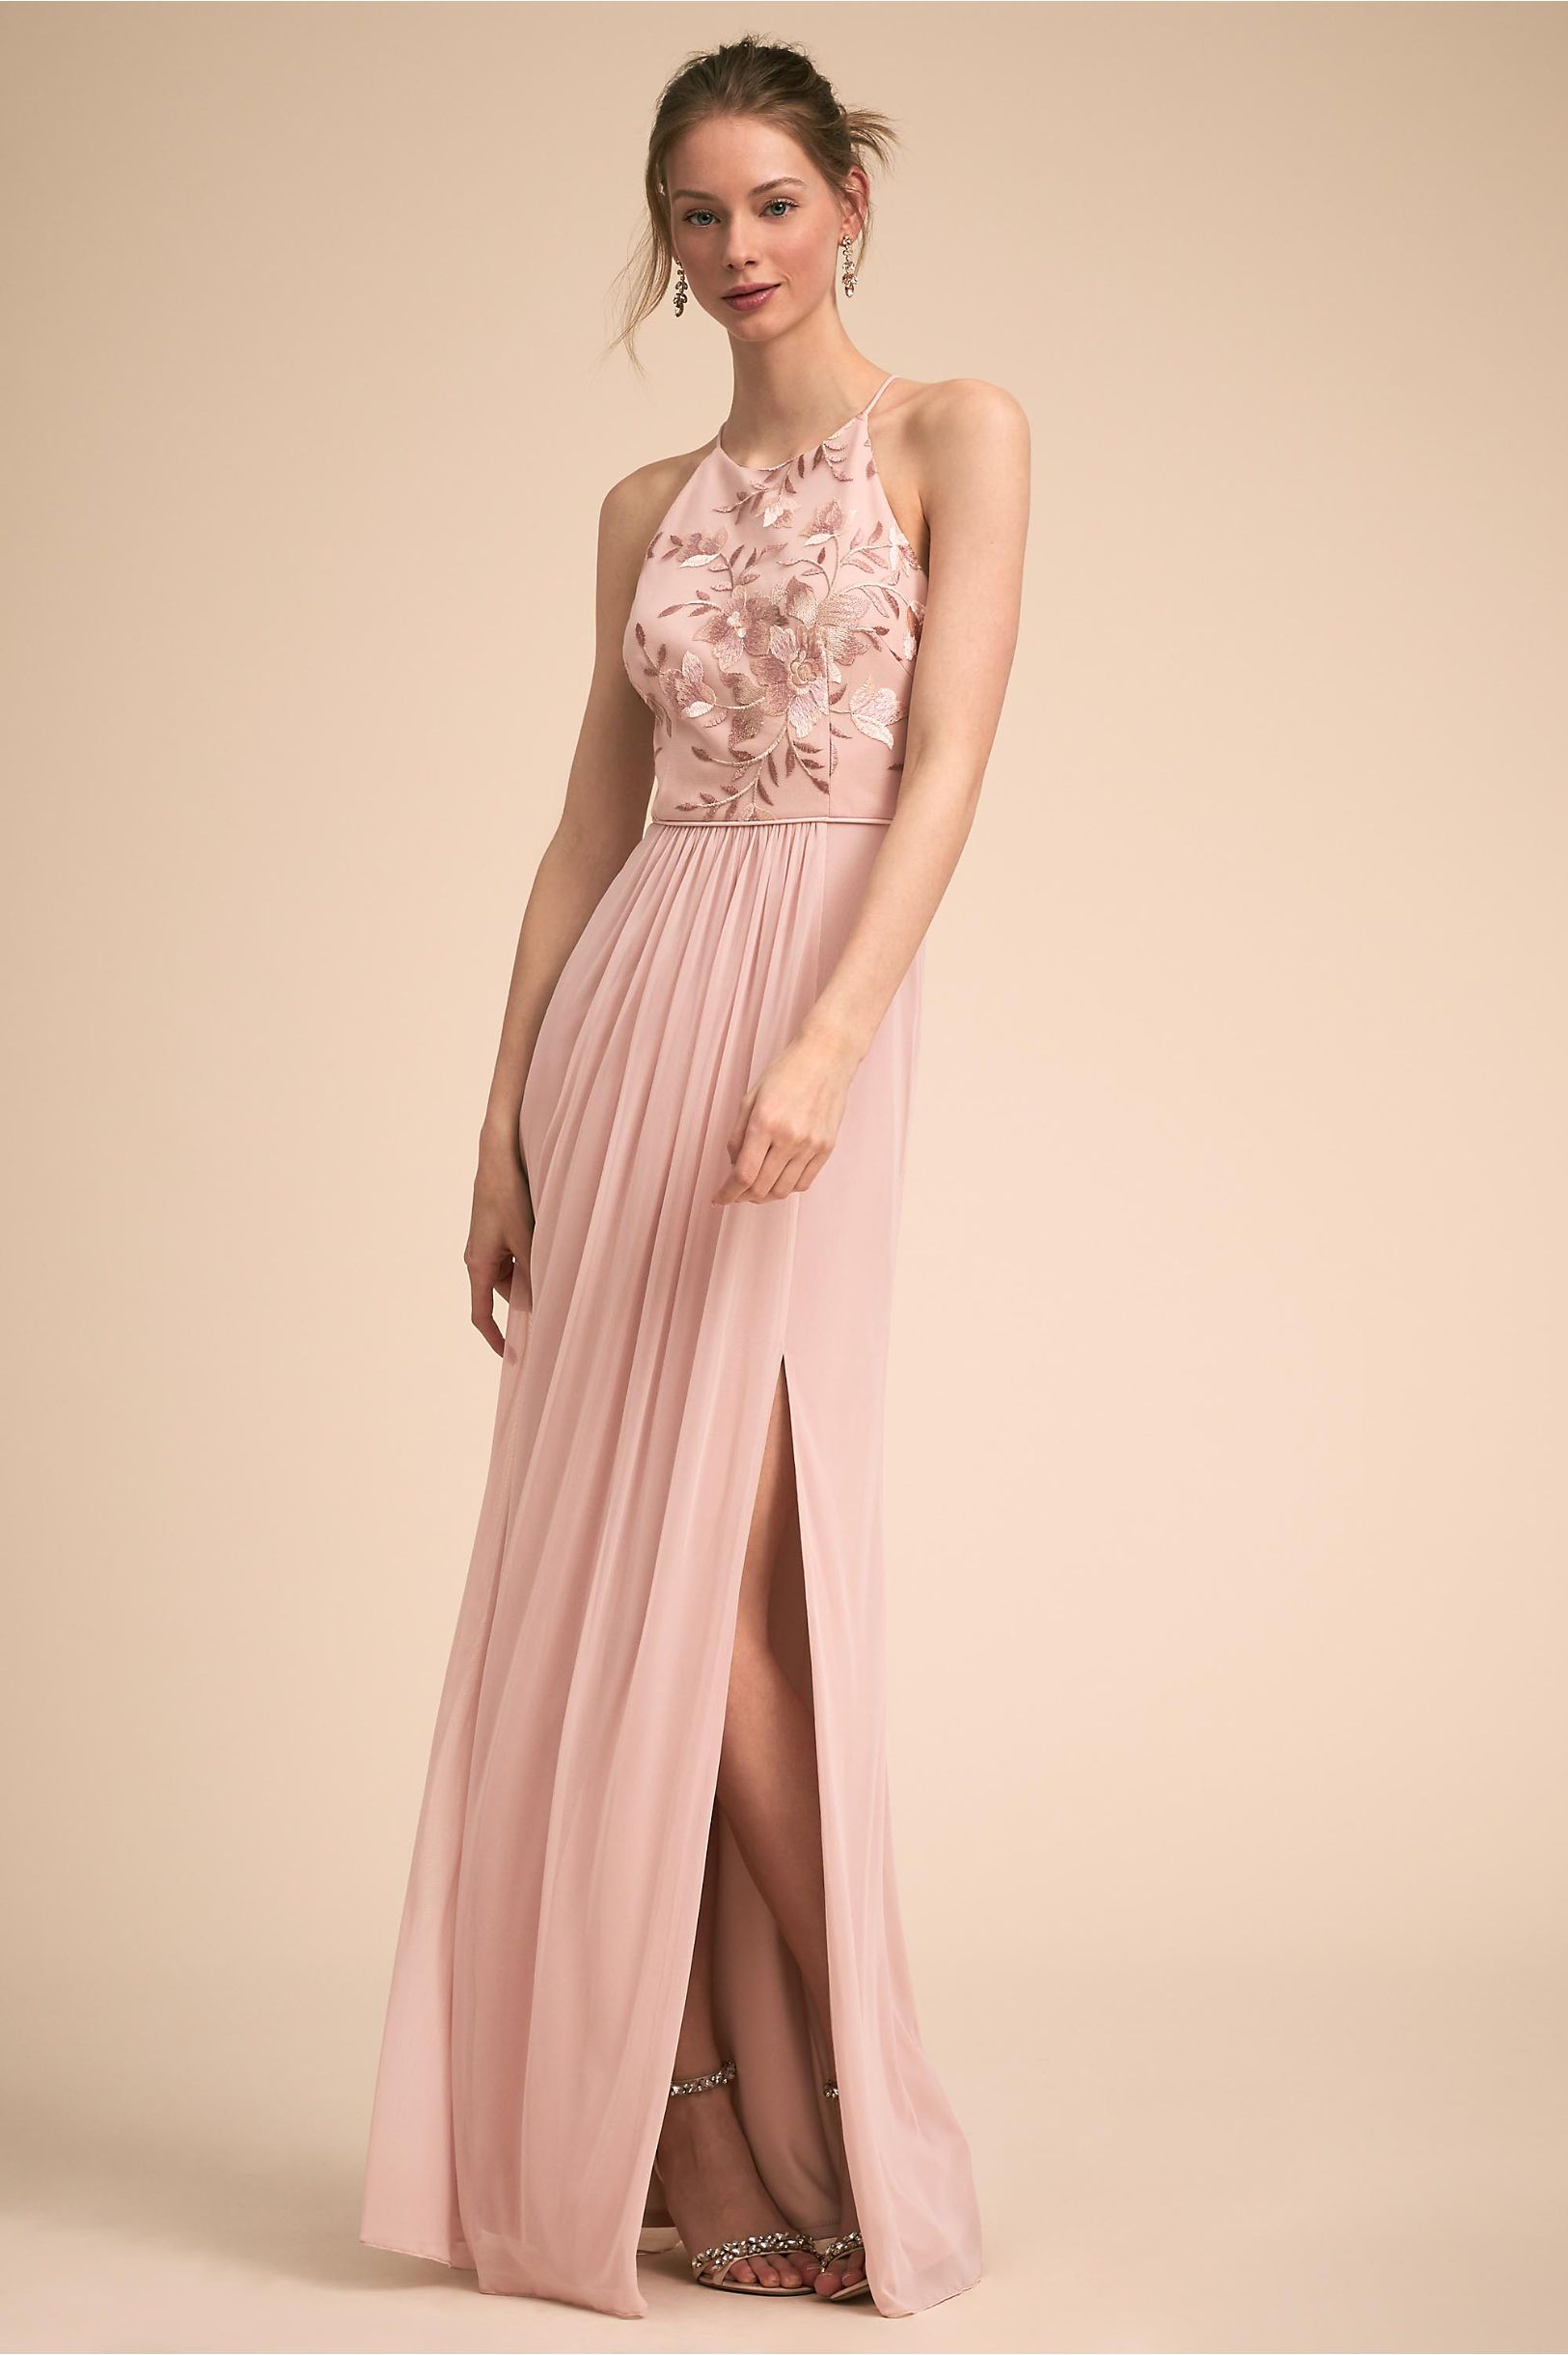 Dresses to wear to a fall wedding for a guest  Carine Dress Rosewood in Bridesmaids u Bridal Party  BHLDN  Dream